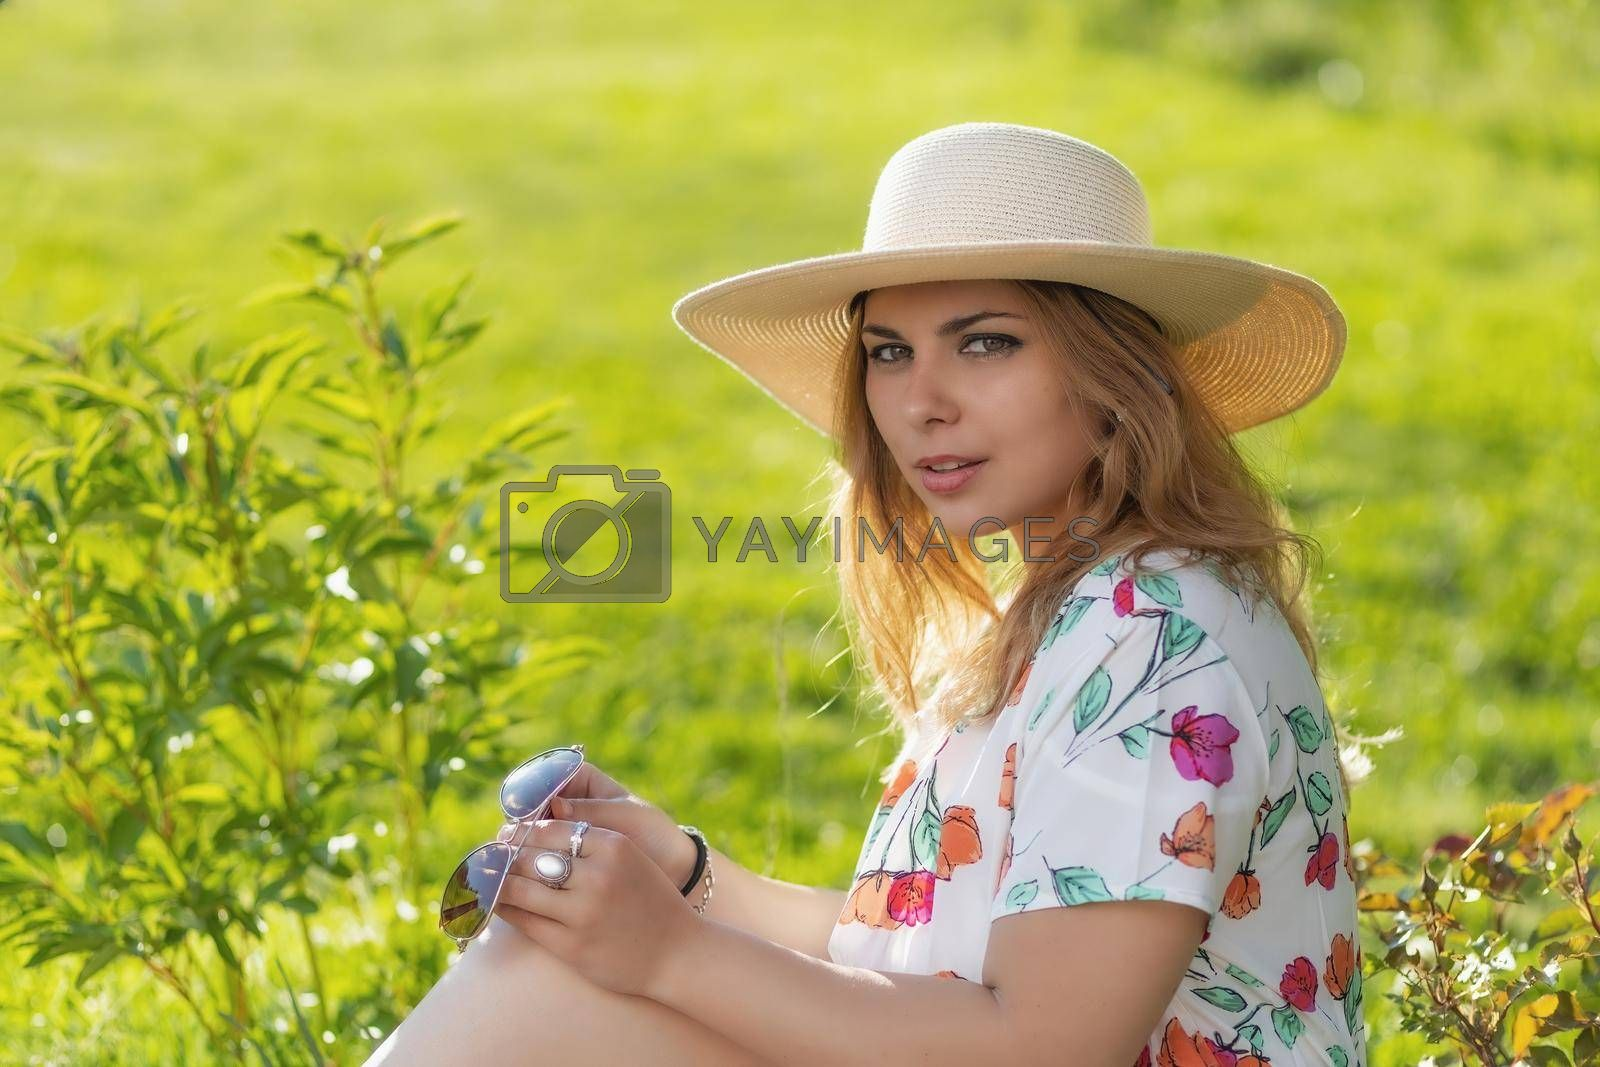 Royalty free image of Portrait of attractive  young woman in straw hat posing outdoors. by Frank11